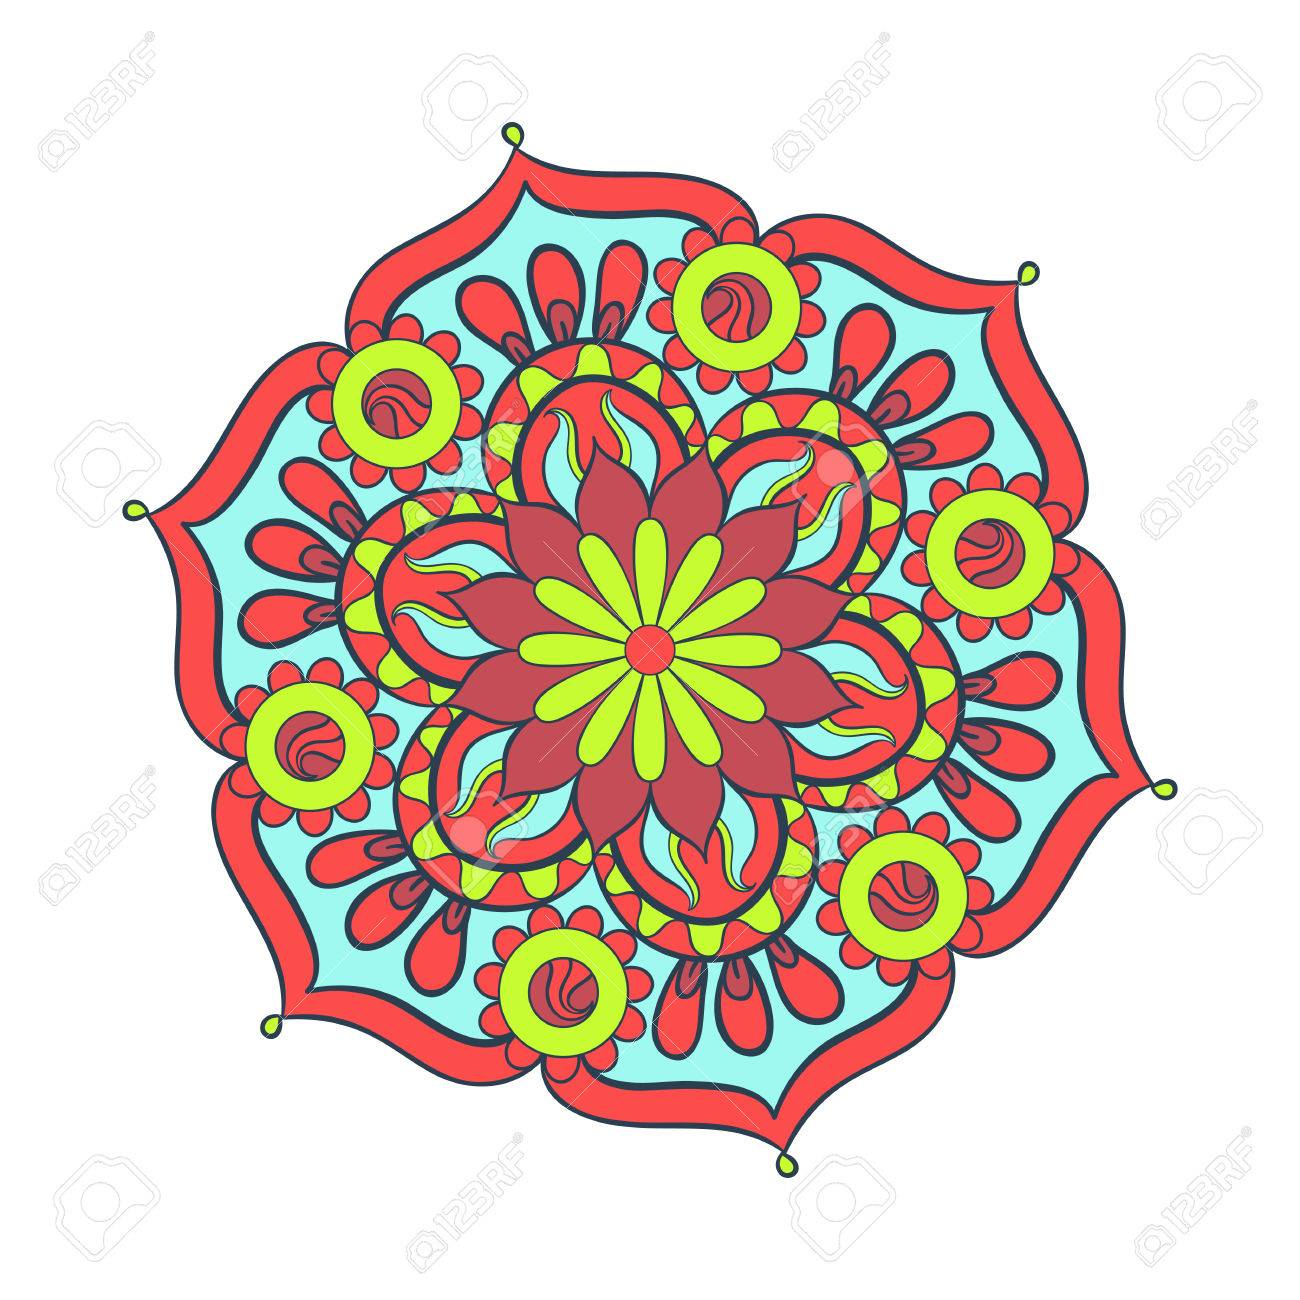 Zentangle Stylized Elegant Color Mandala For Coloring Page. Hand ...